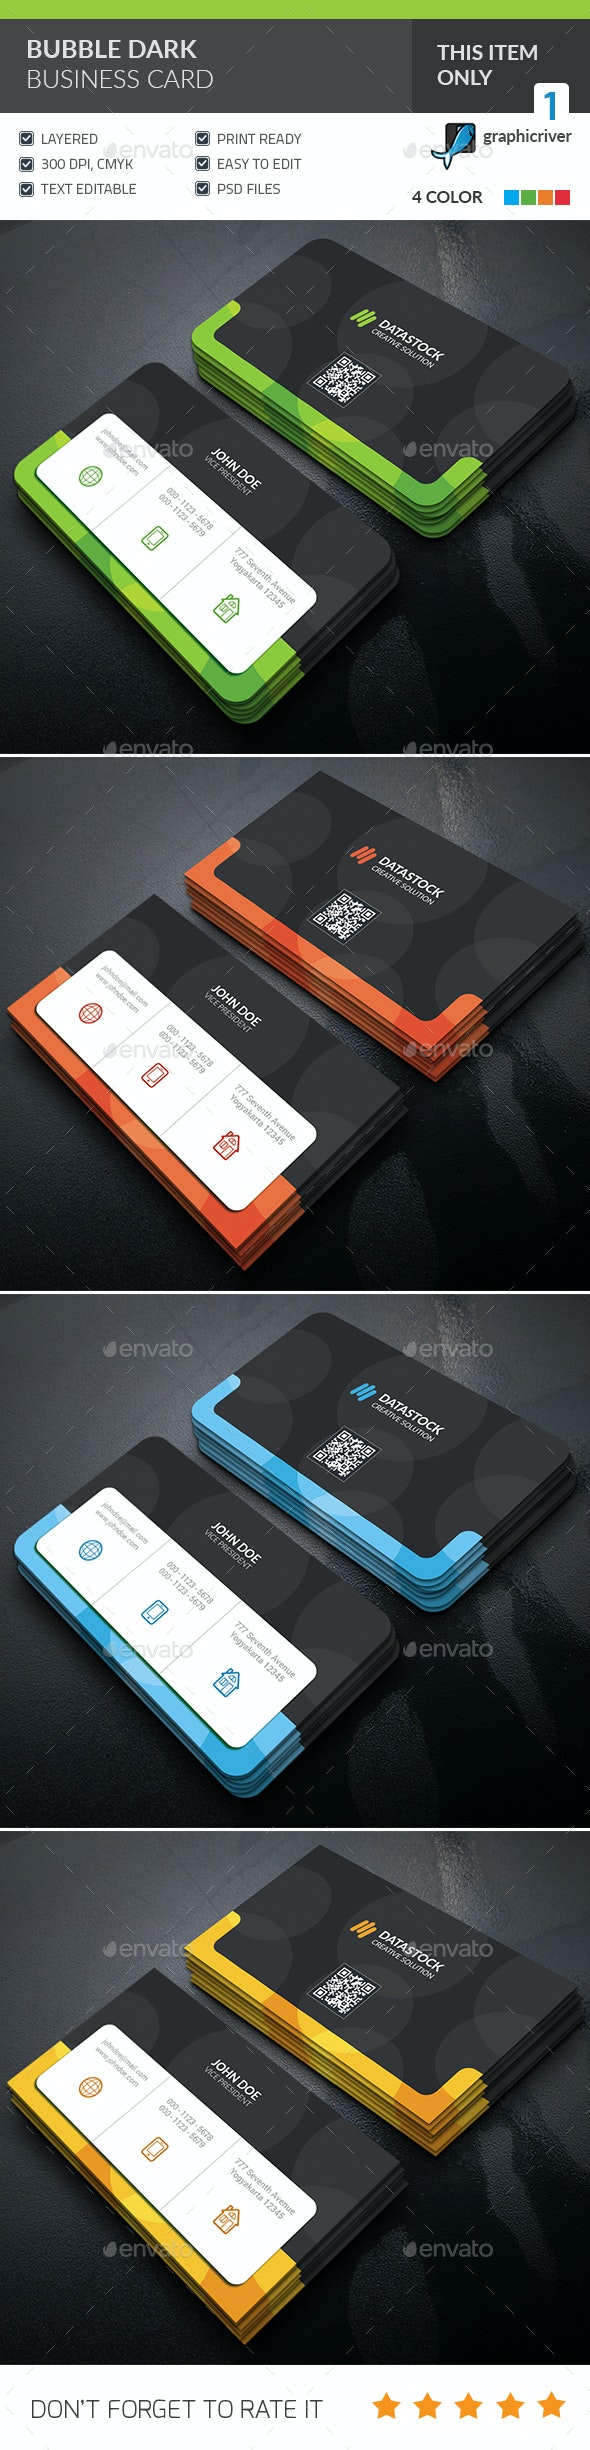 Bubble Dark Business Card  - Corporate Business Cards